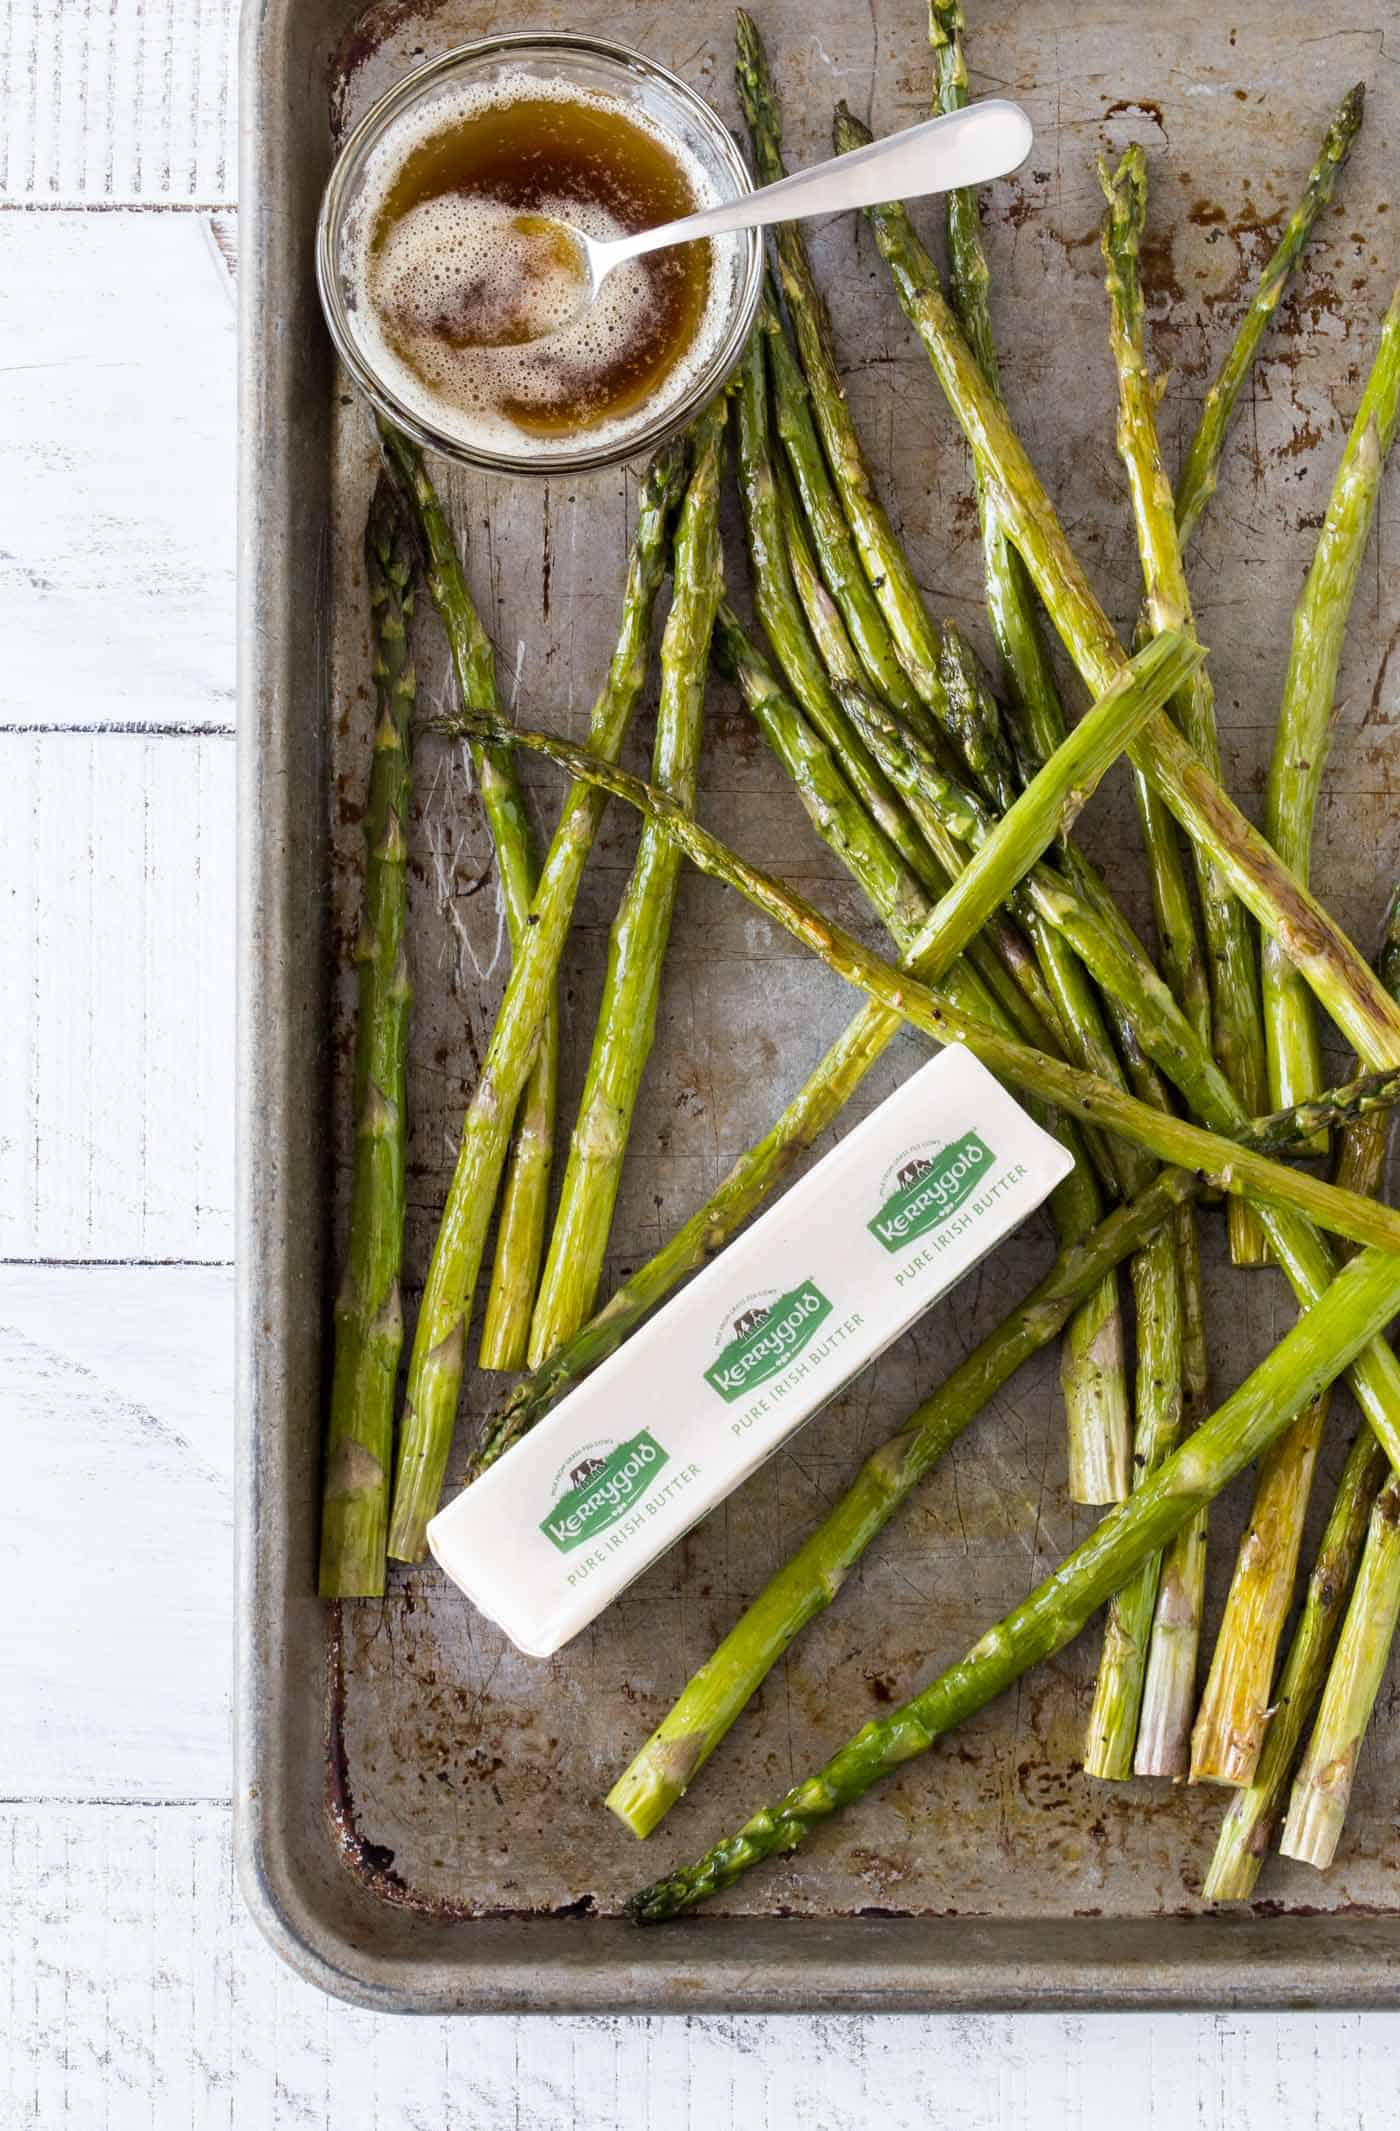 Oven Roasted Asparagus on a sheet pan with a small white bowl of brown butter sauce and a stick of Kerrygold salted butter.